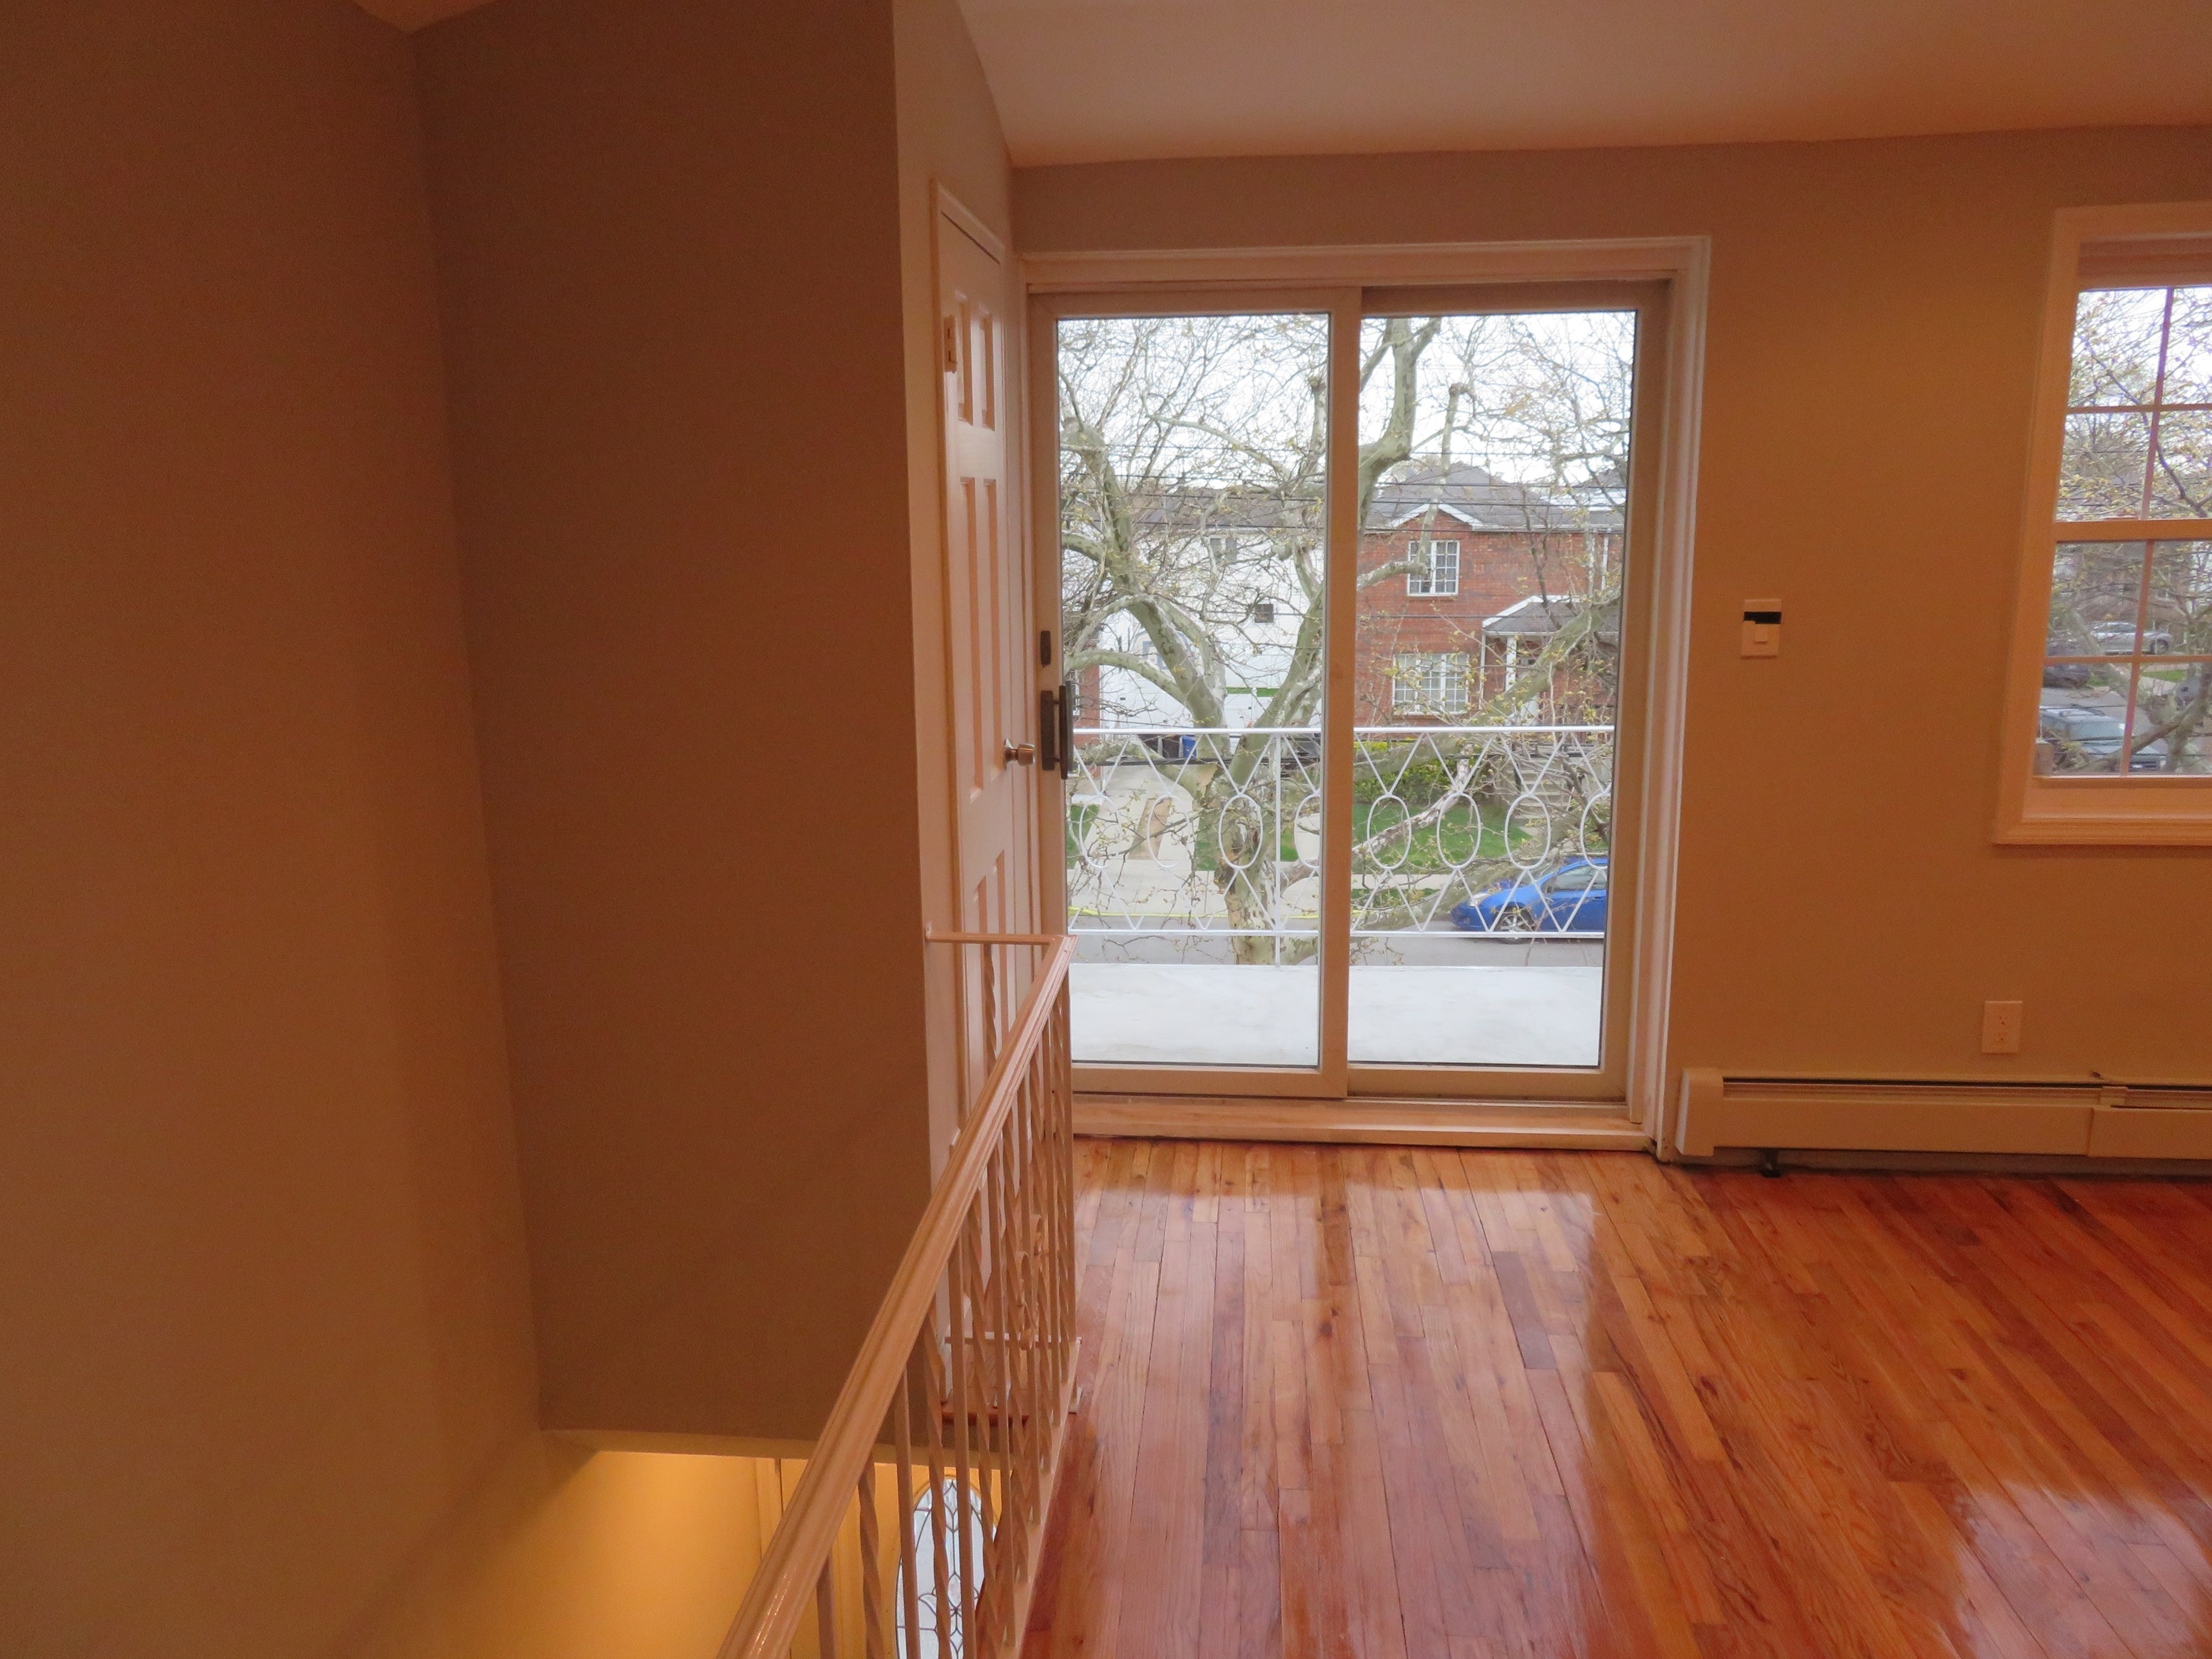 Houses for Rent in Flushing, NY  Sulekha Rentals